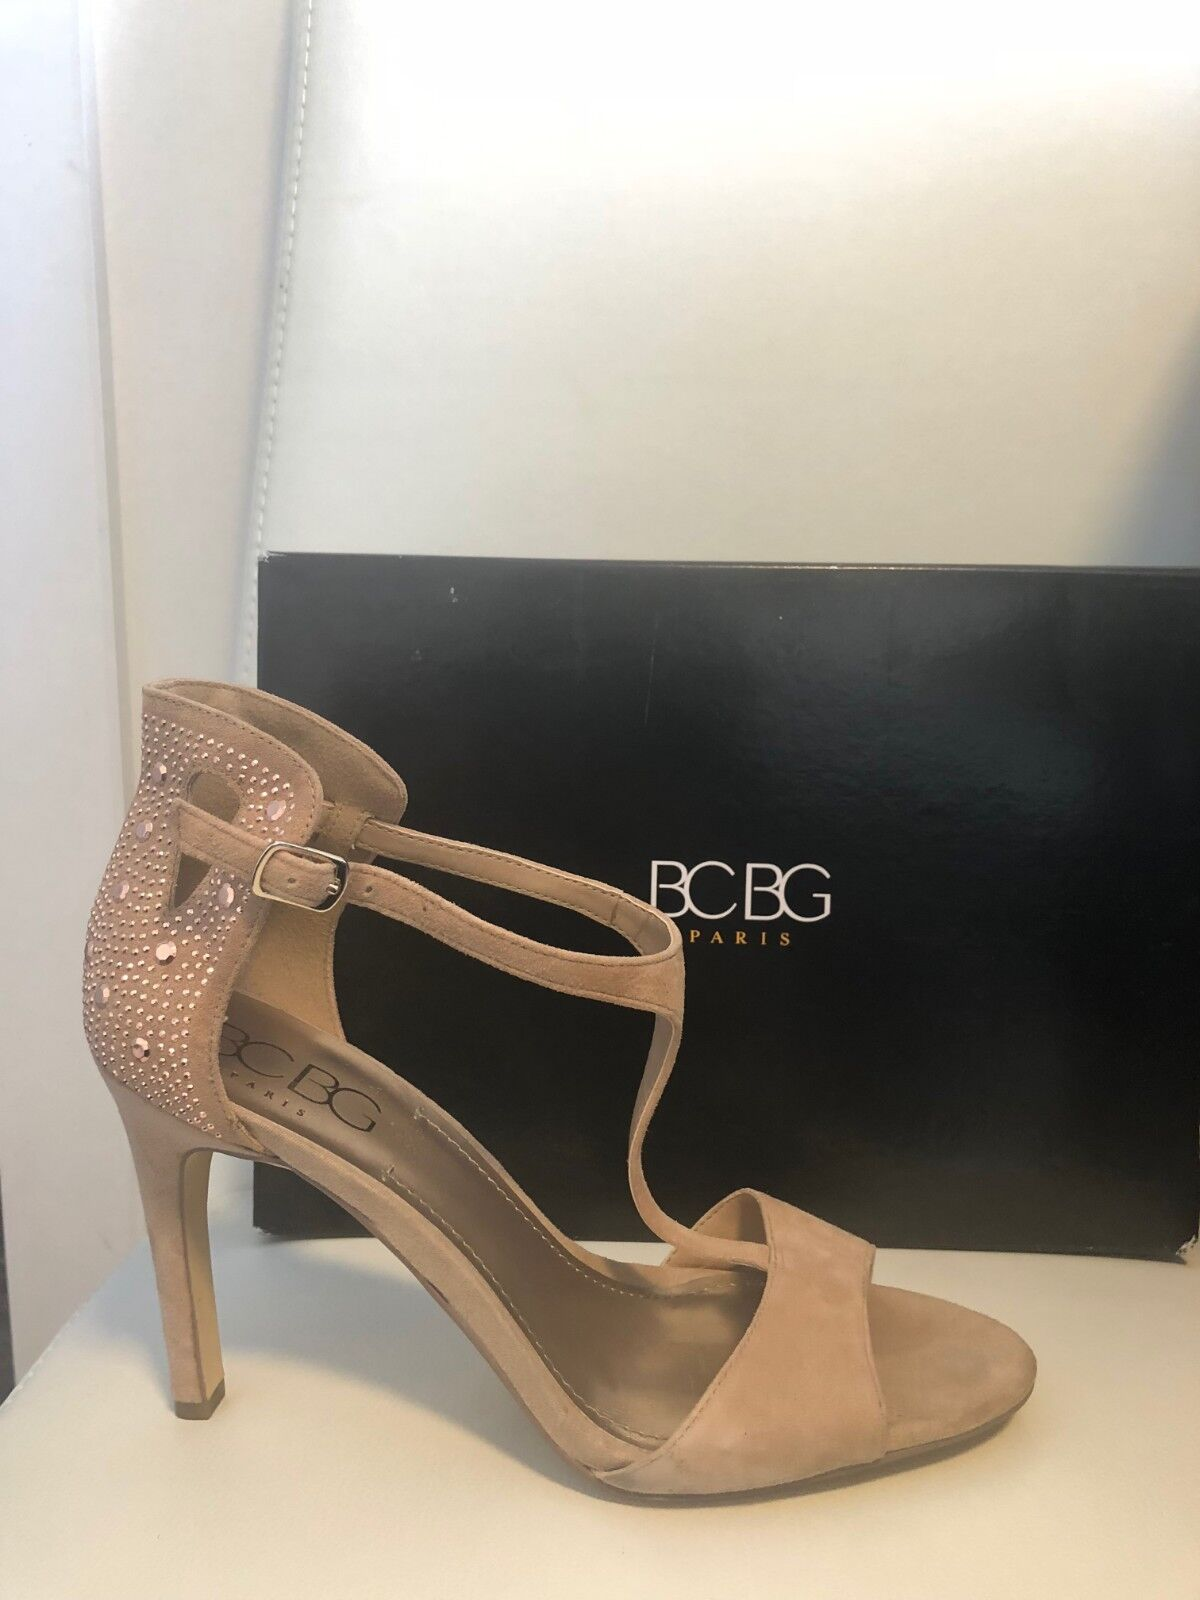 BCBG sandals model MARGINA color CAMEL 9